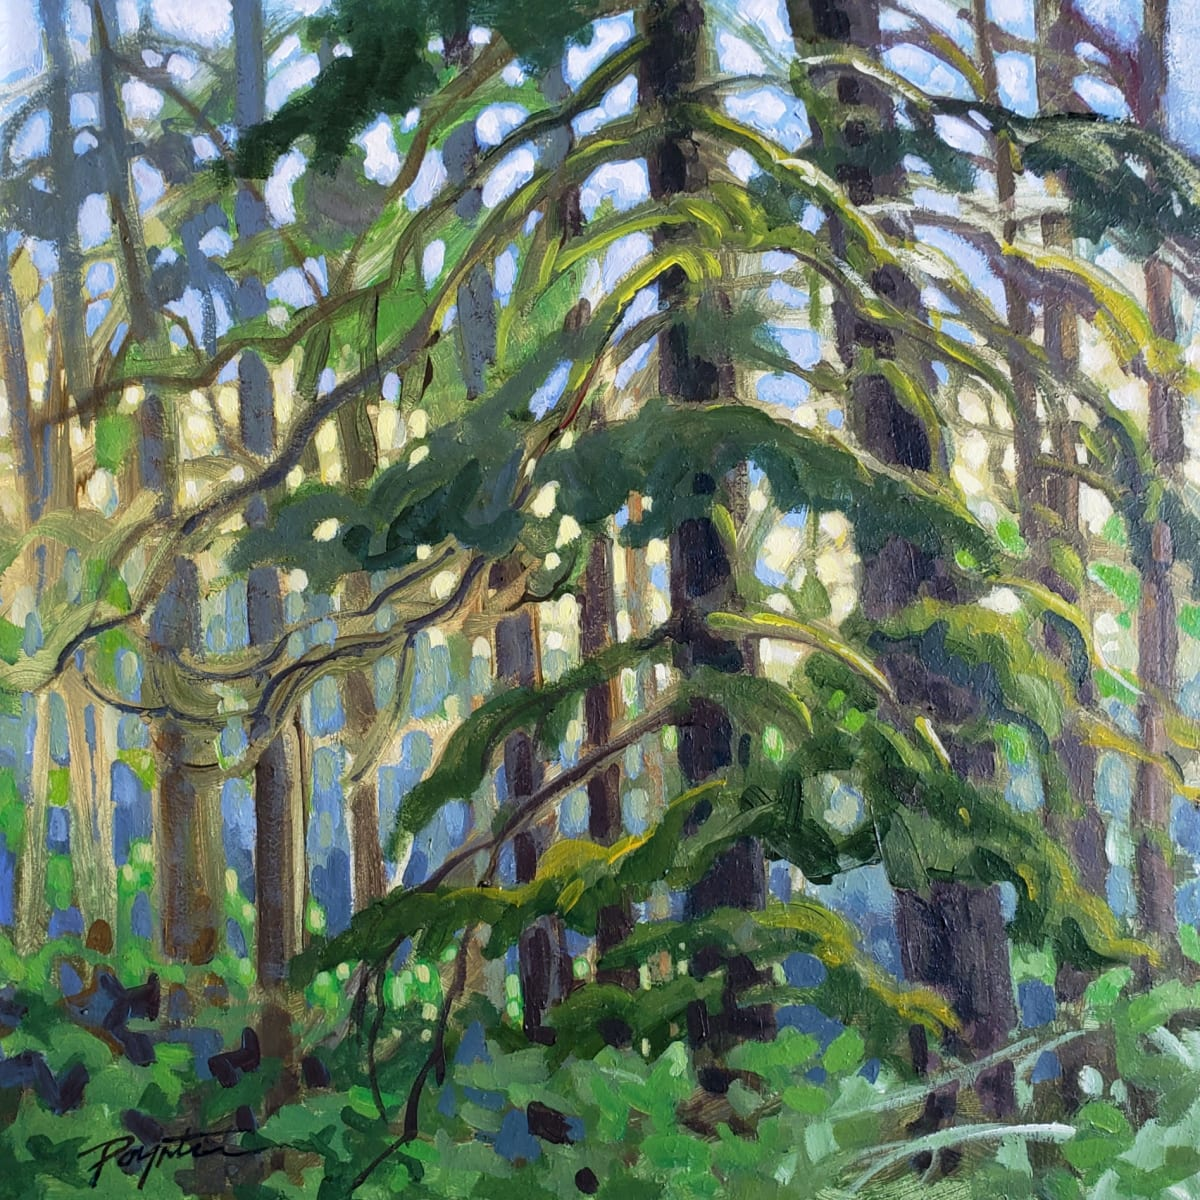 Forest study #1